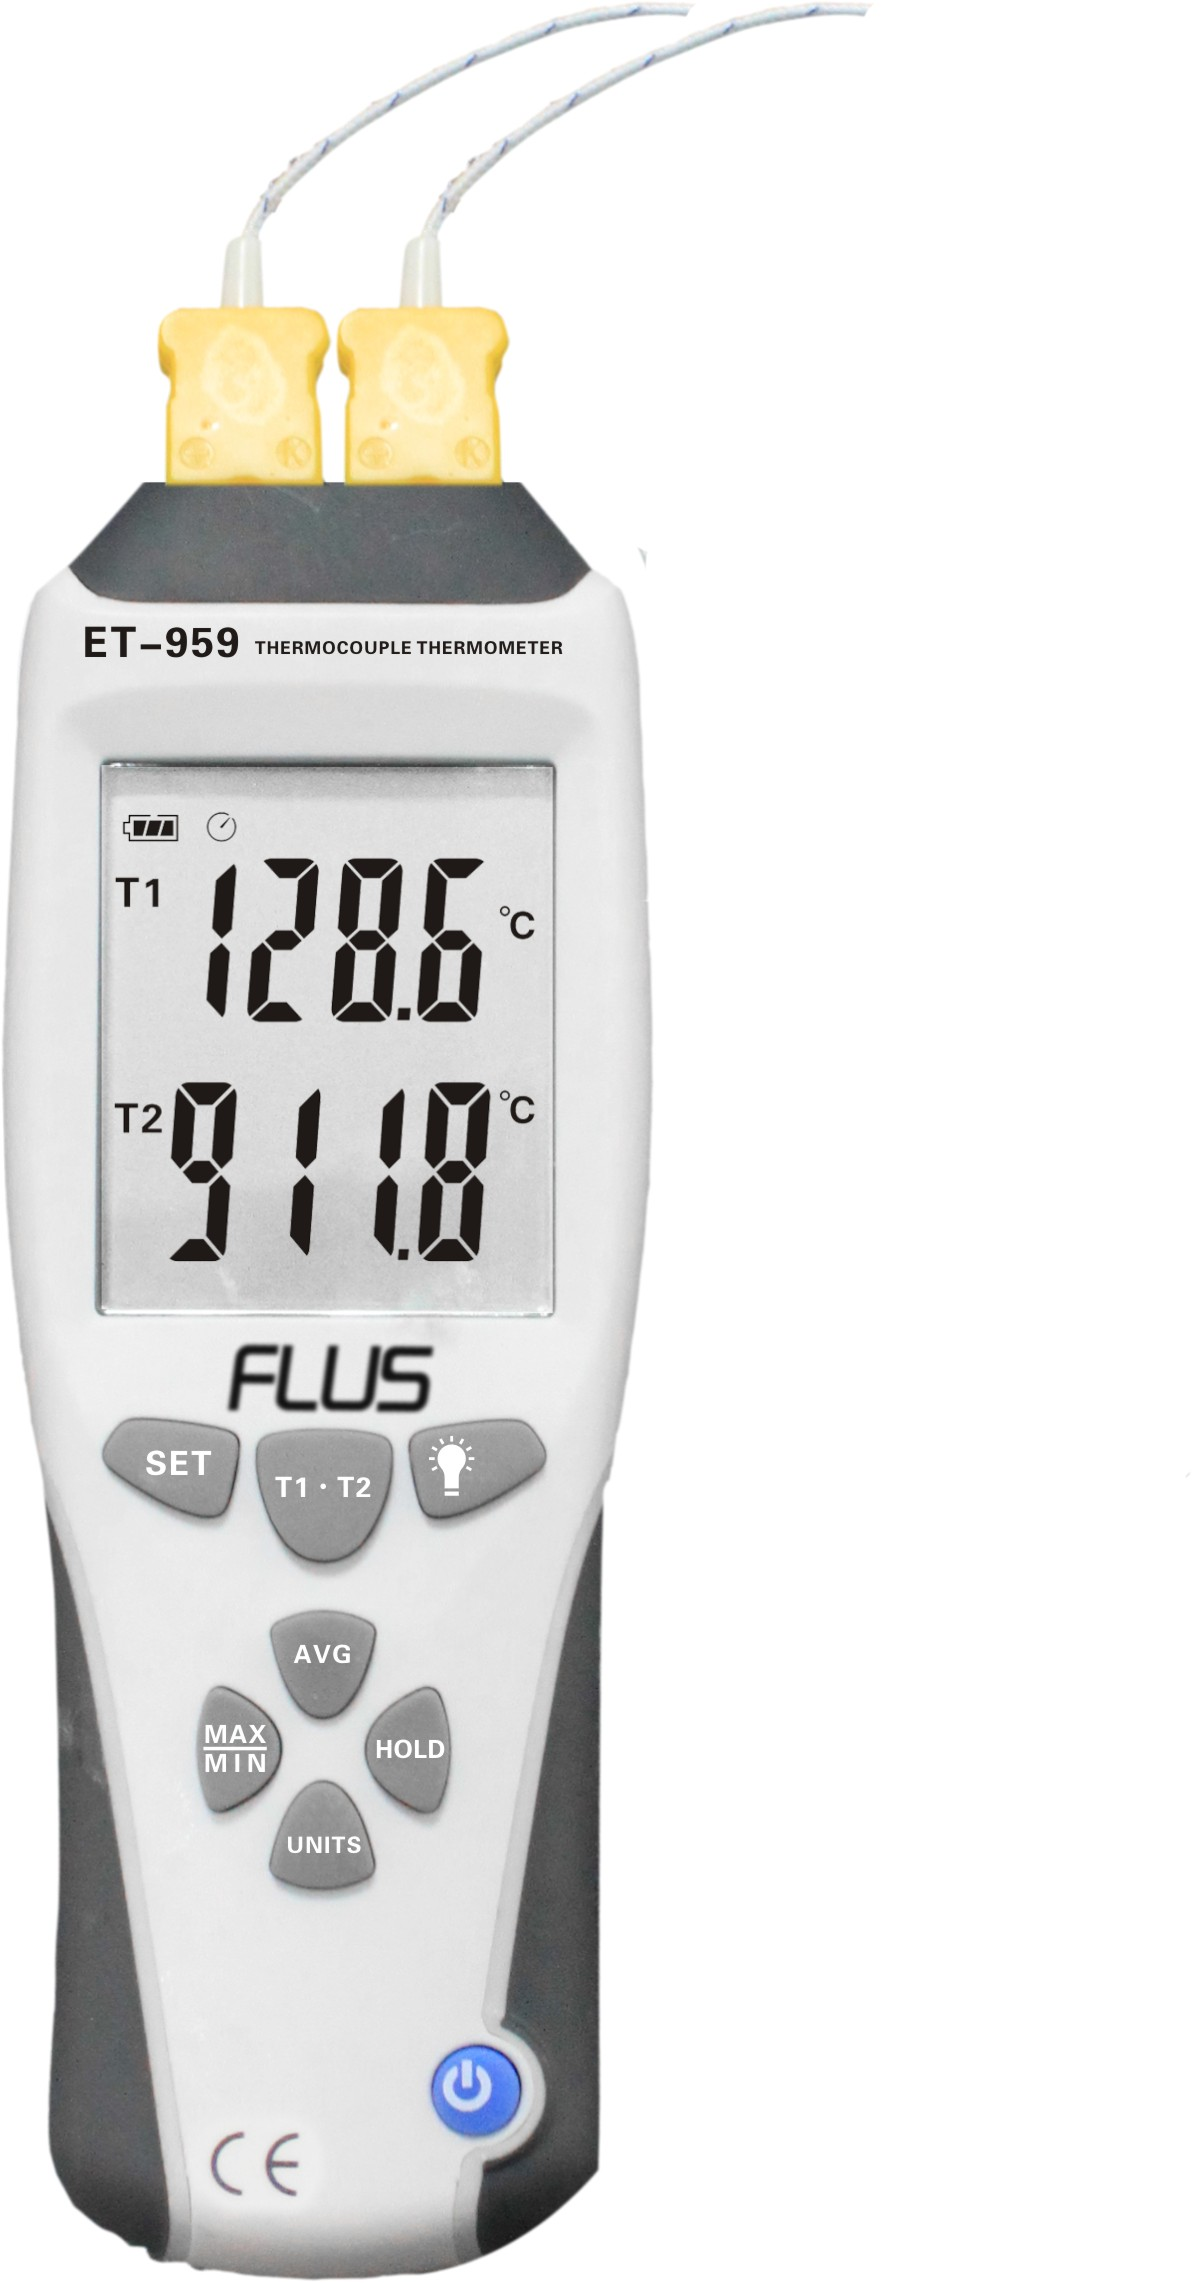 Esis Infra Red Temperature Ir Flus Pic Digital Thermometer Electronicslab Dimensionlwh 18566 33 Mm Weight 255g Larger Picture